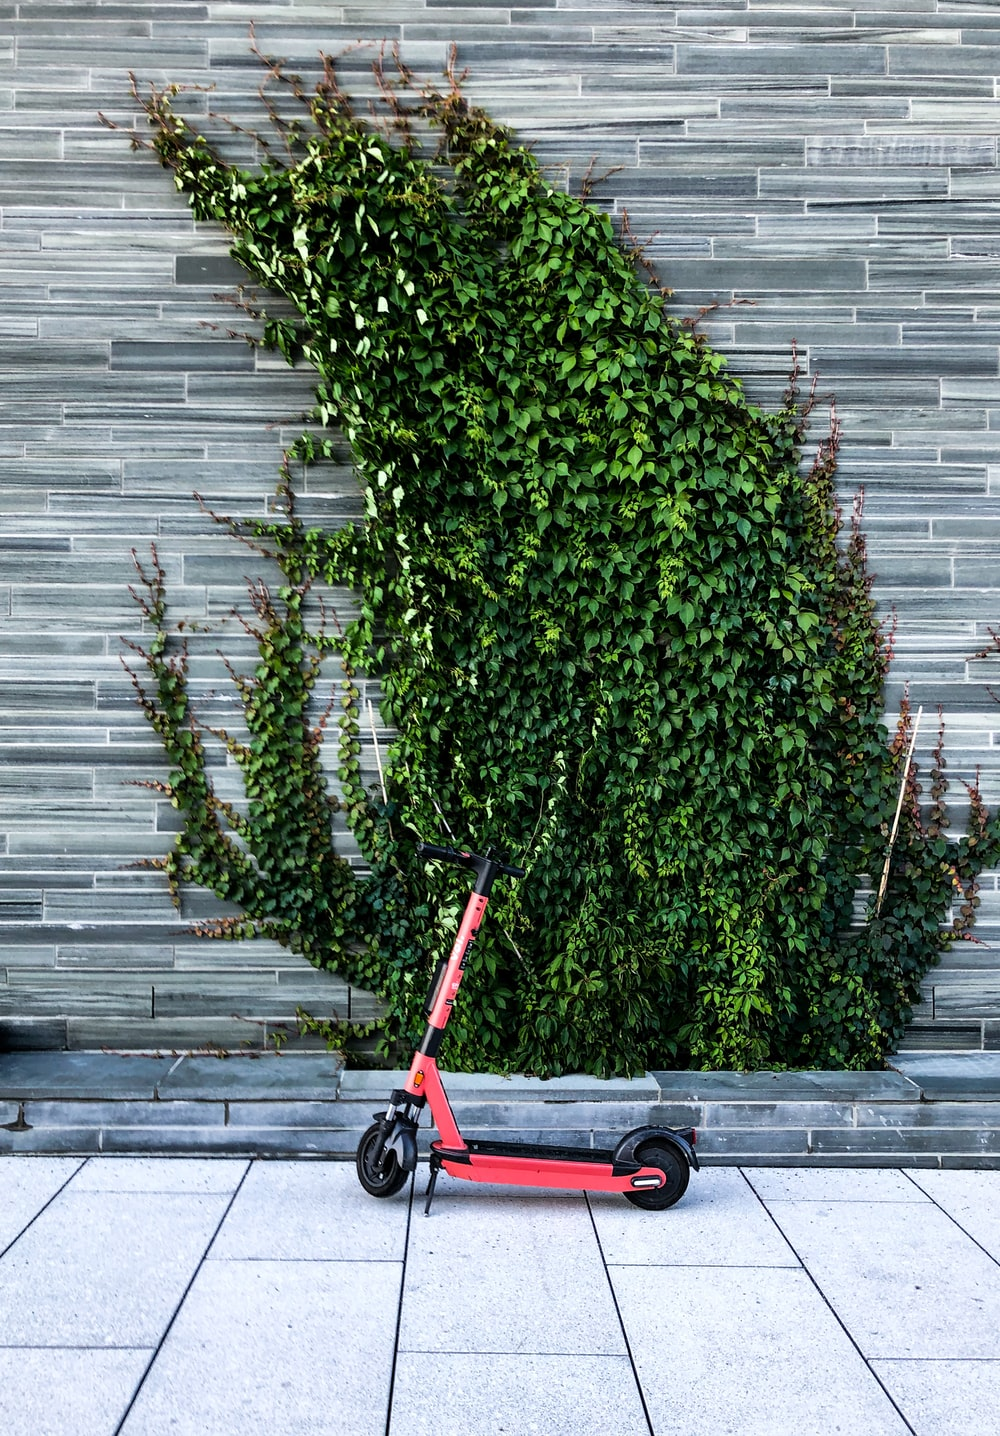 red and black stroller beside green plant